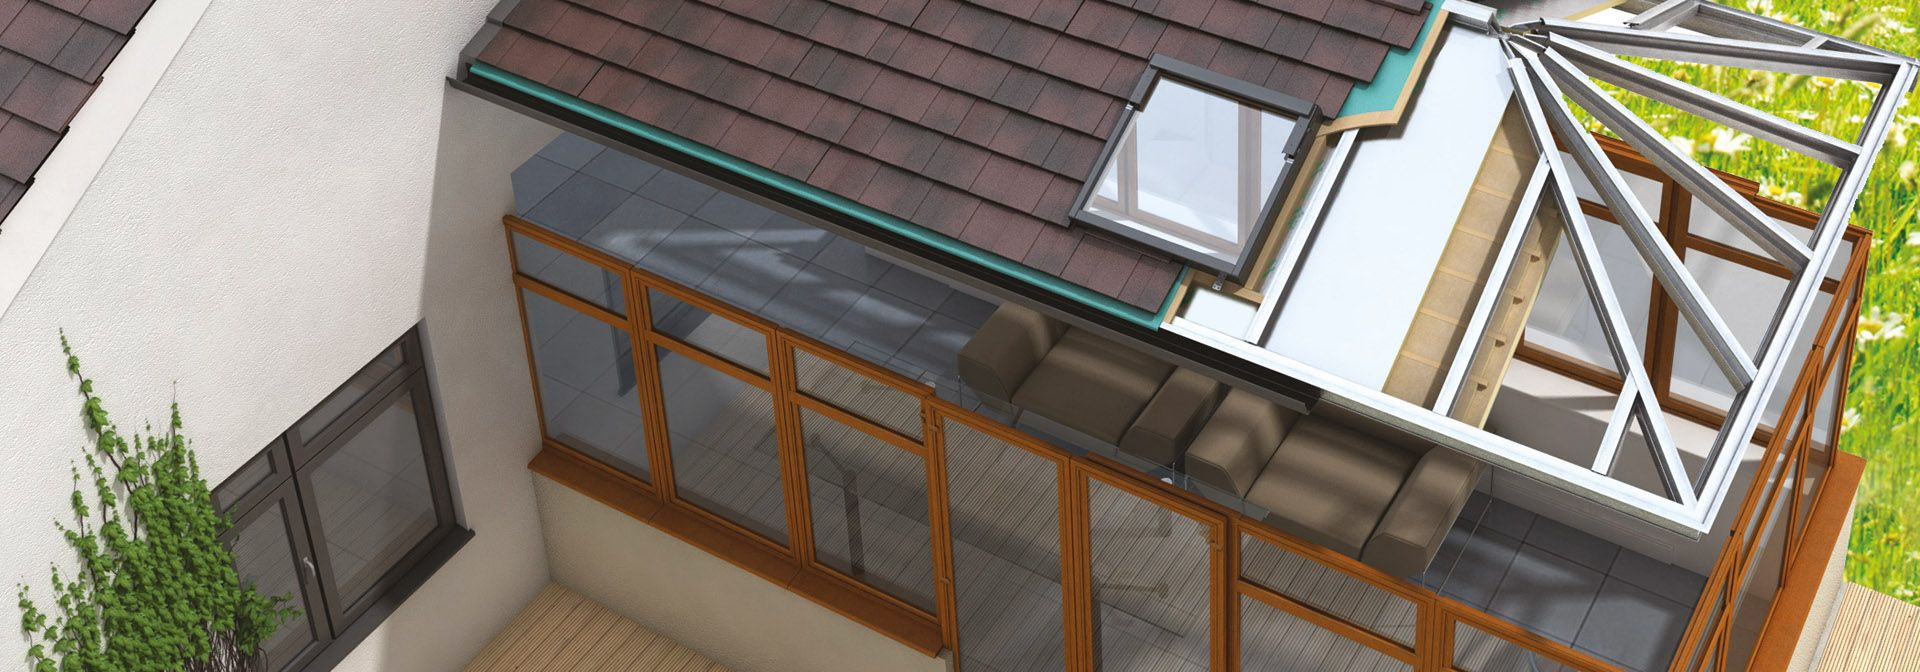 A solid conservatory roof will insulate your conservatory while improving the style, inside and out.